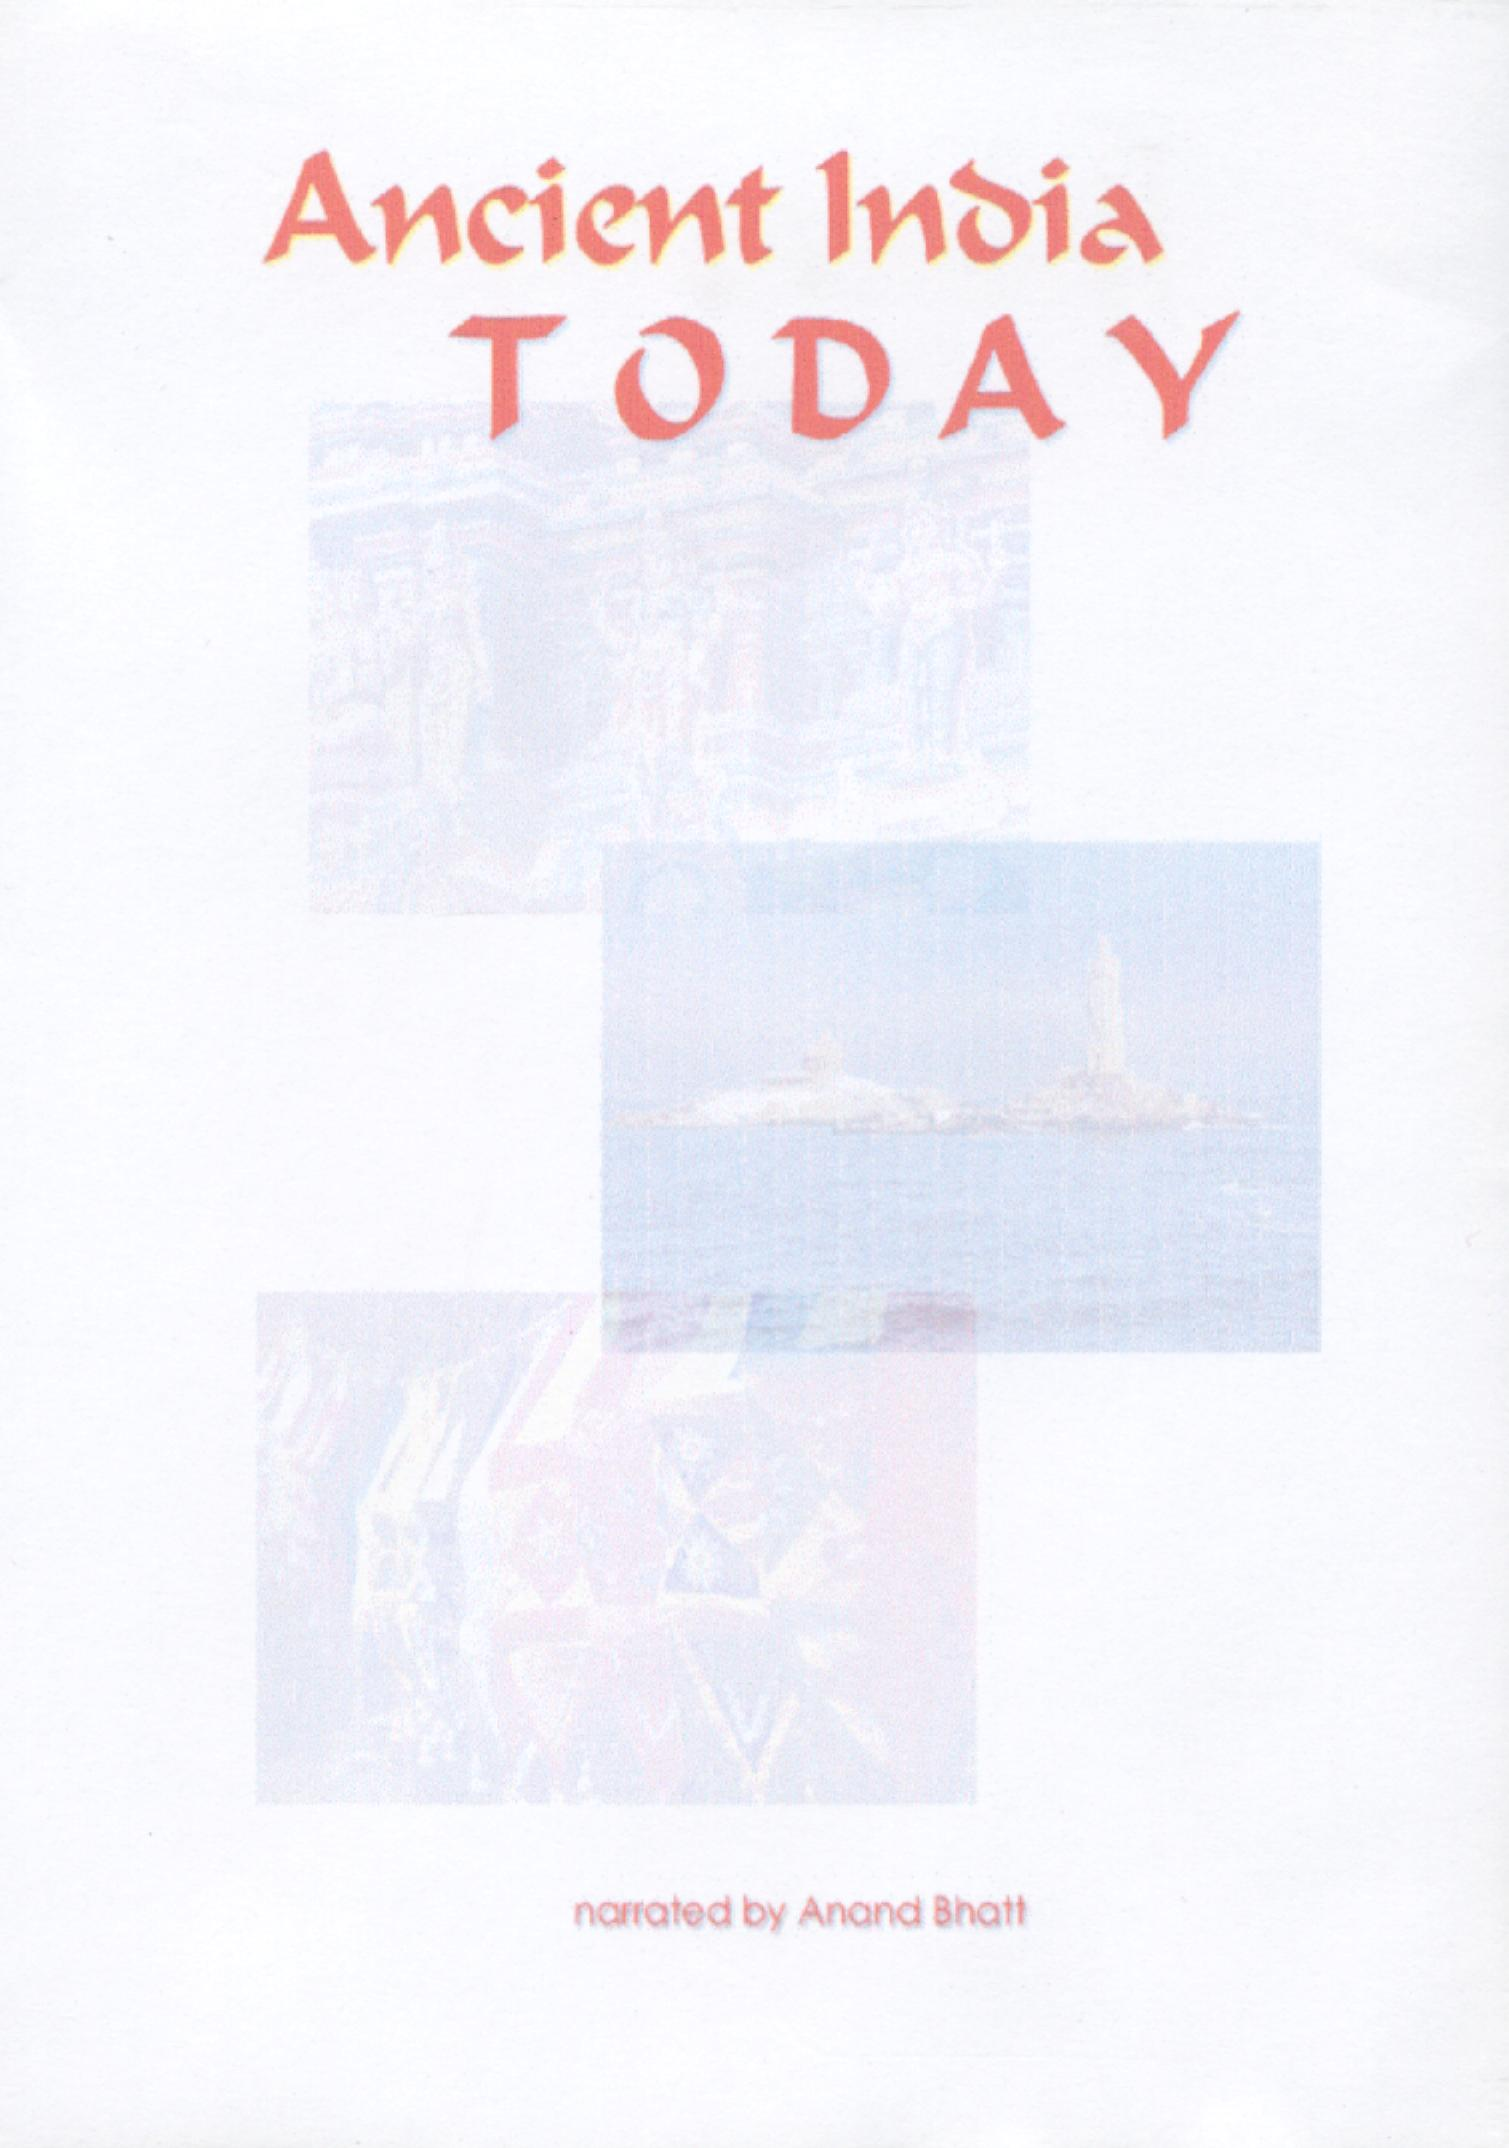 Ancient India Today